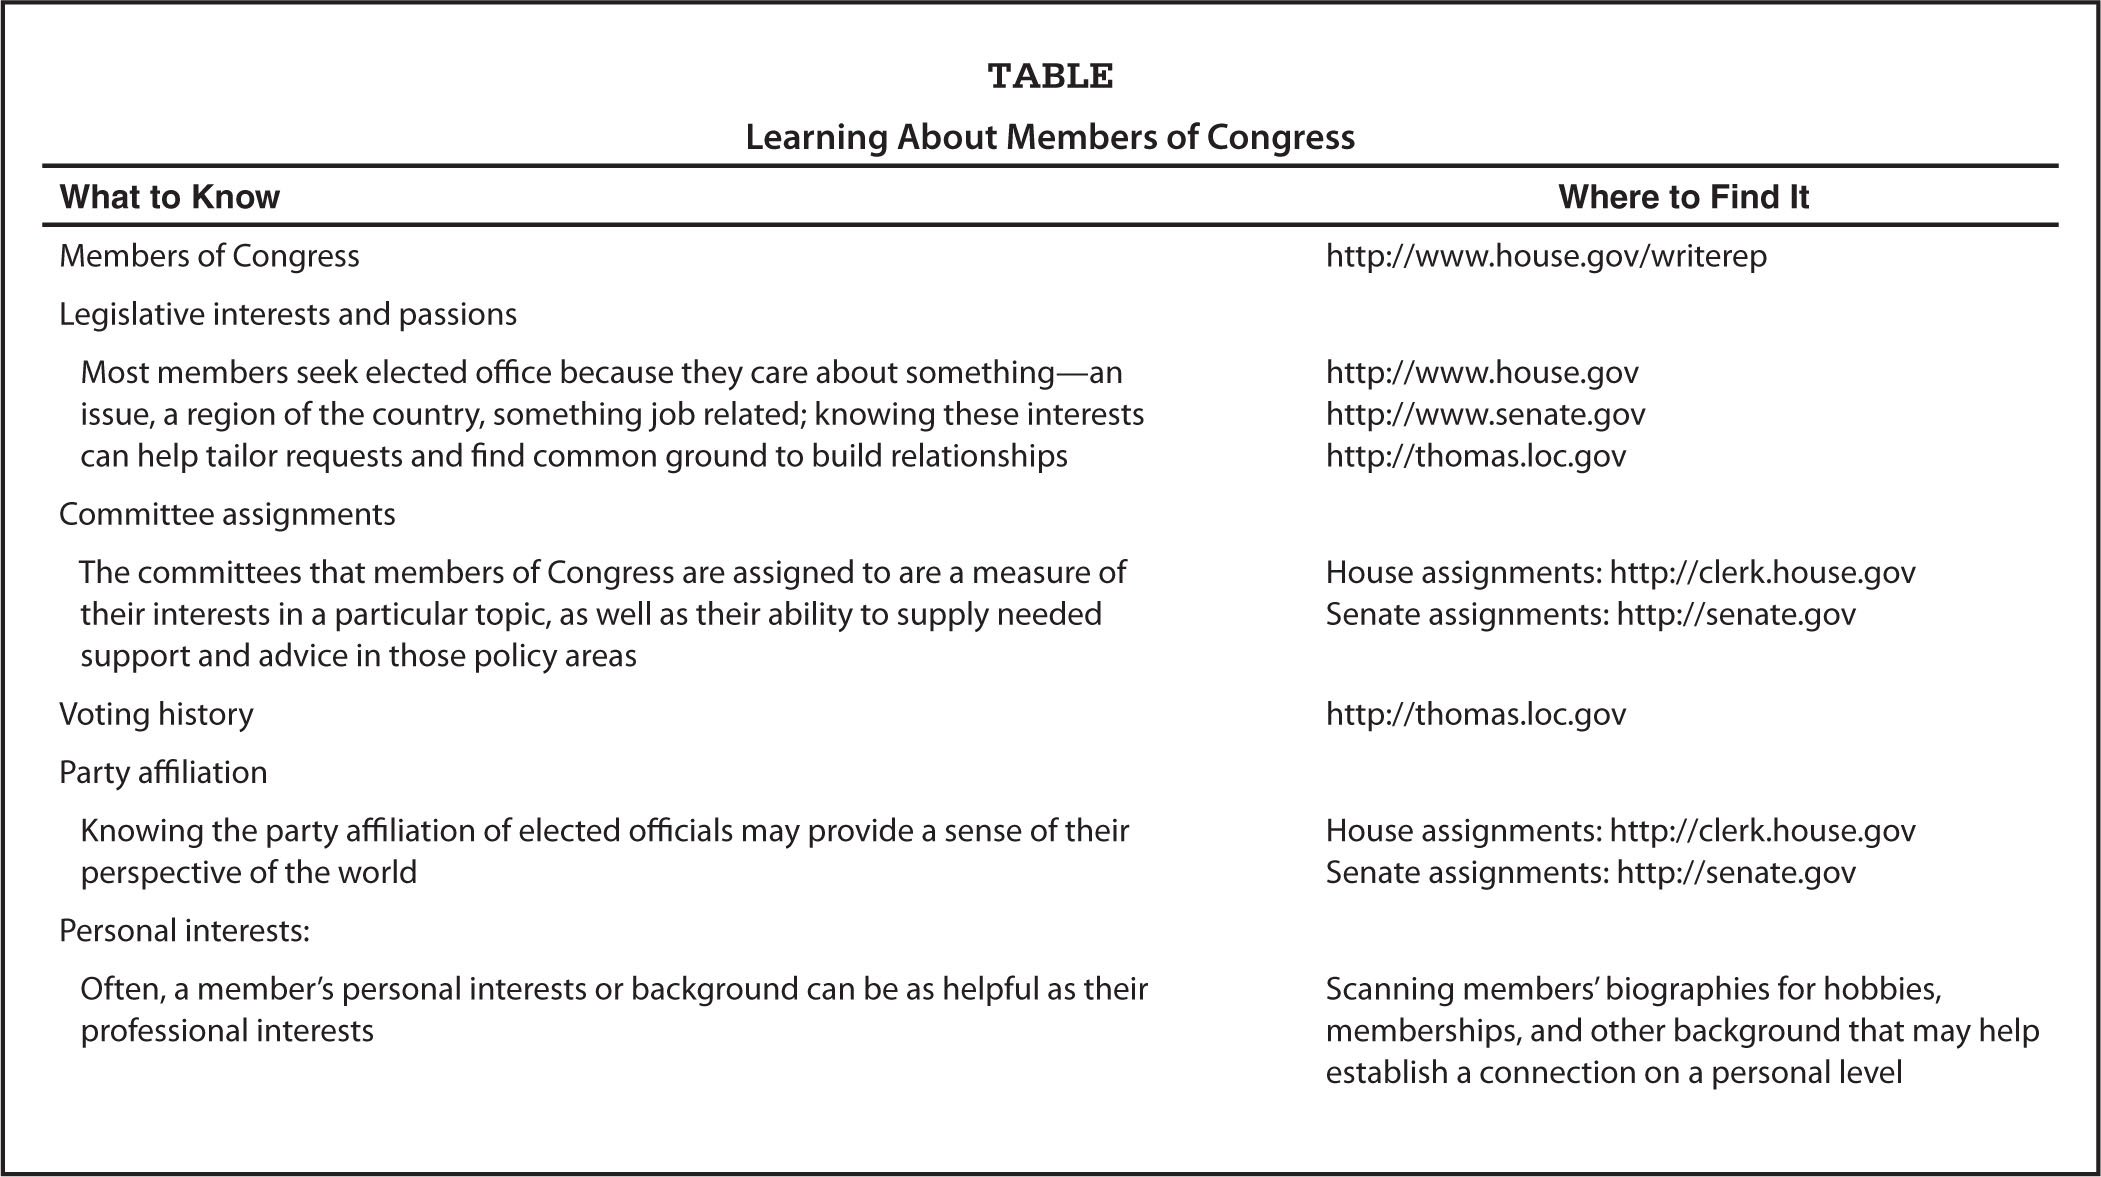 Learning About Members of Congress